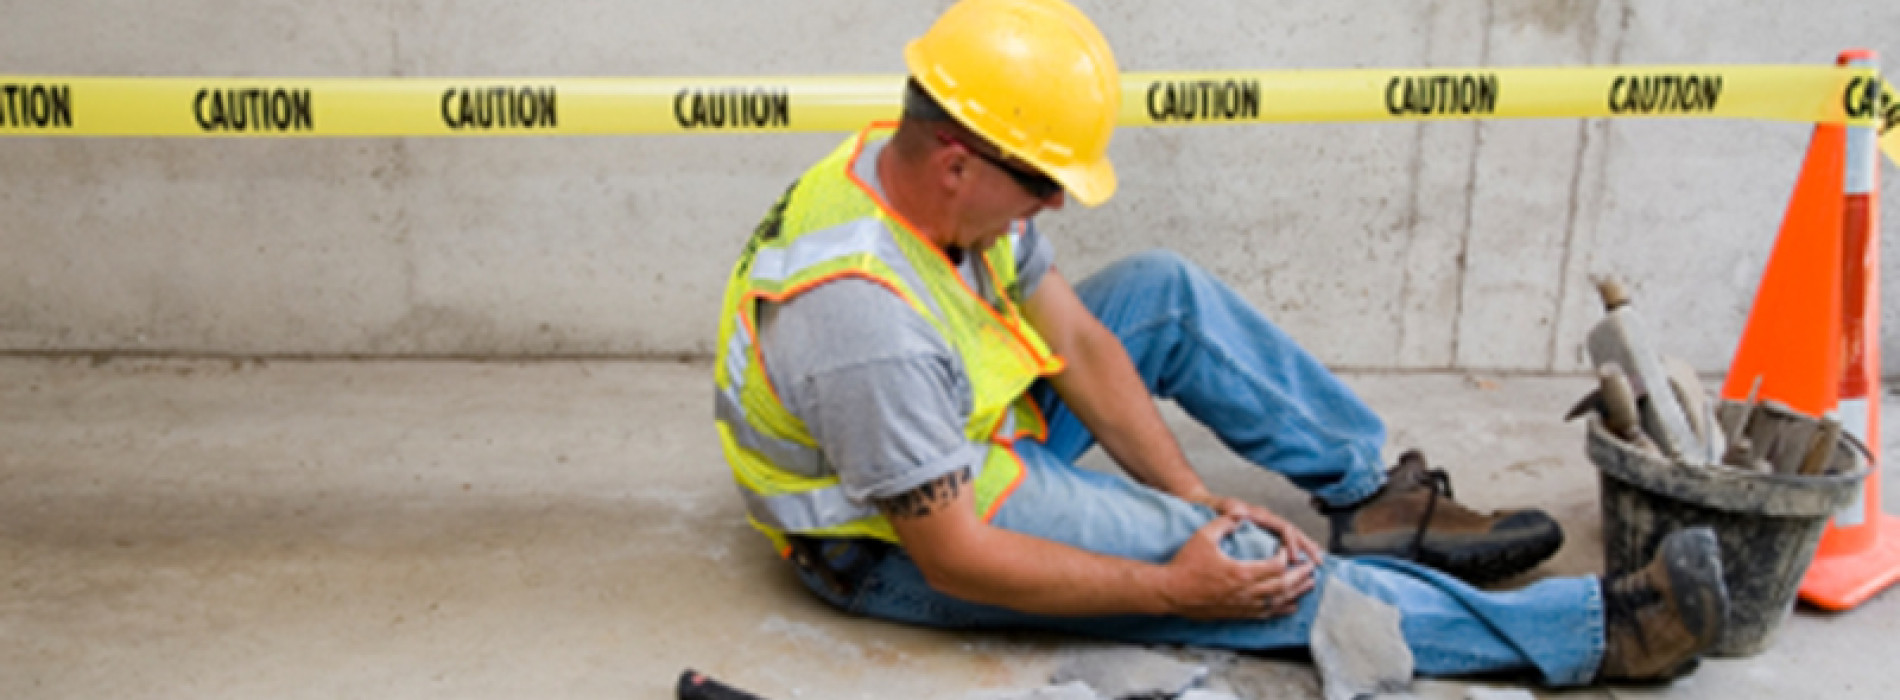 Where To Find Help And Advice Following An Injury Or Accident